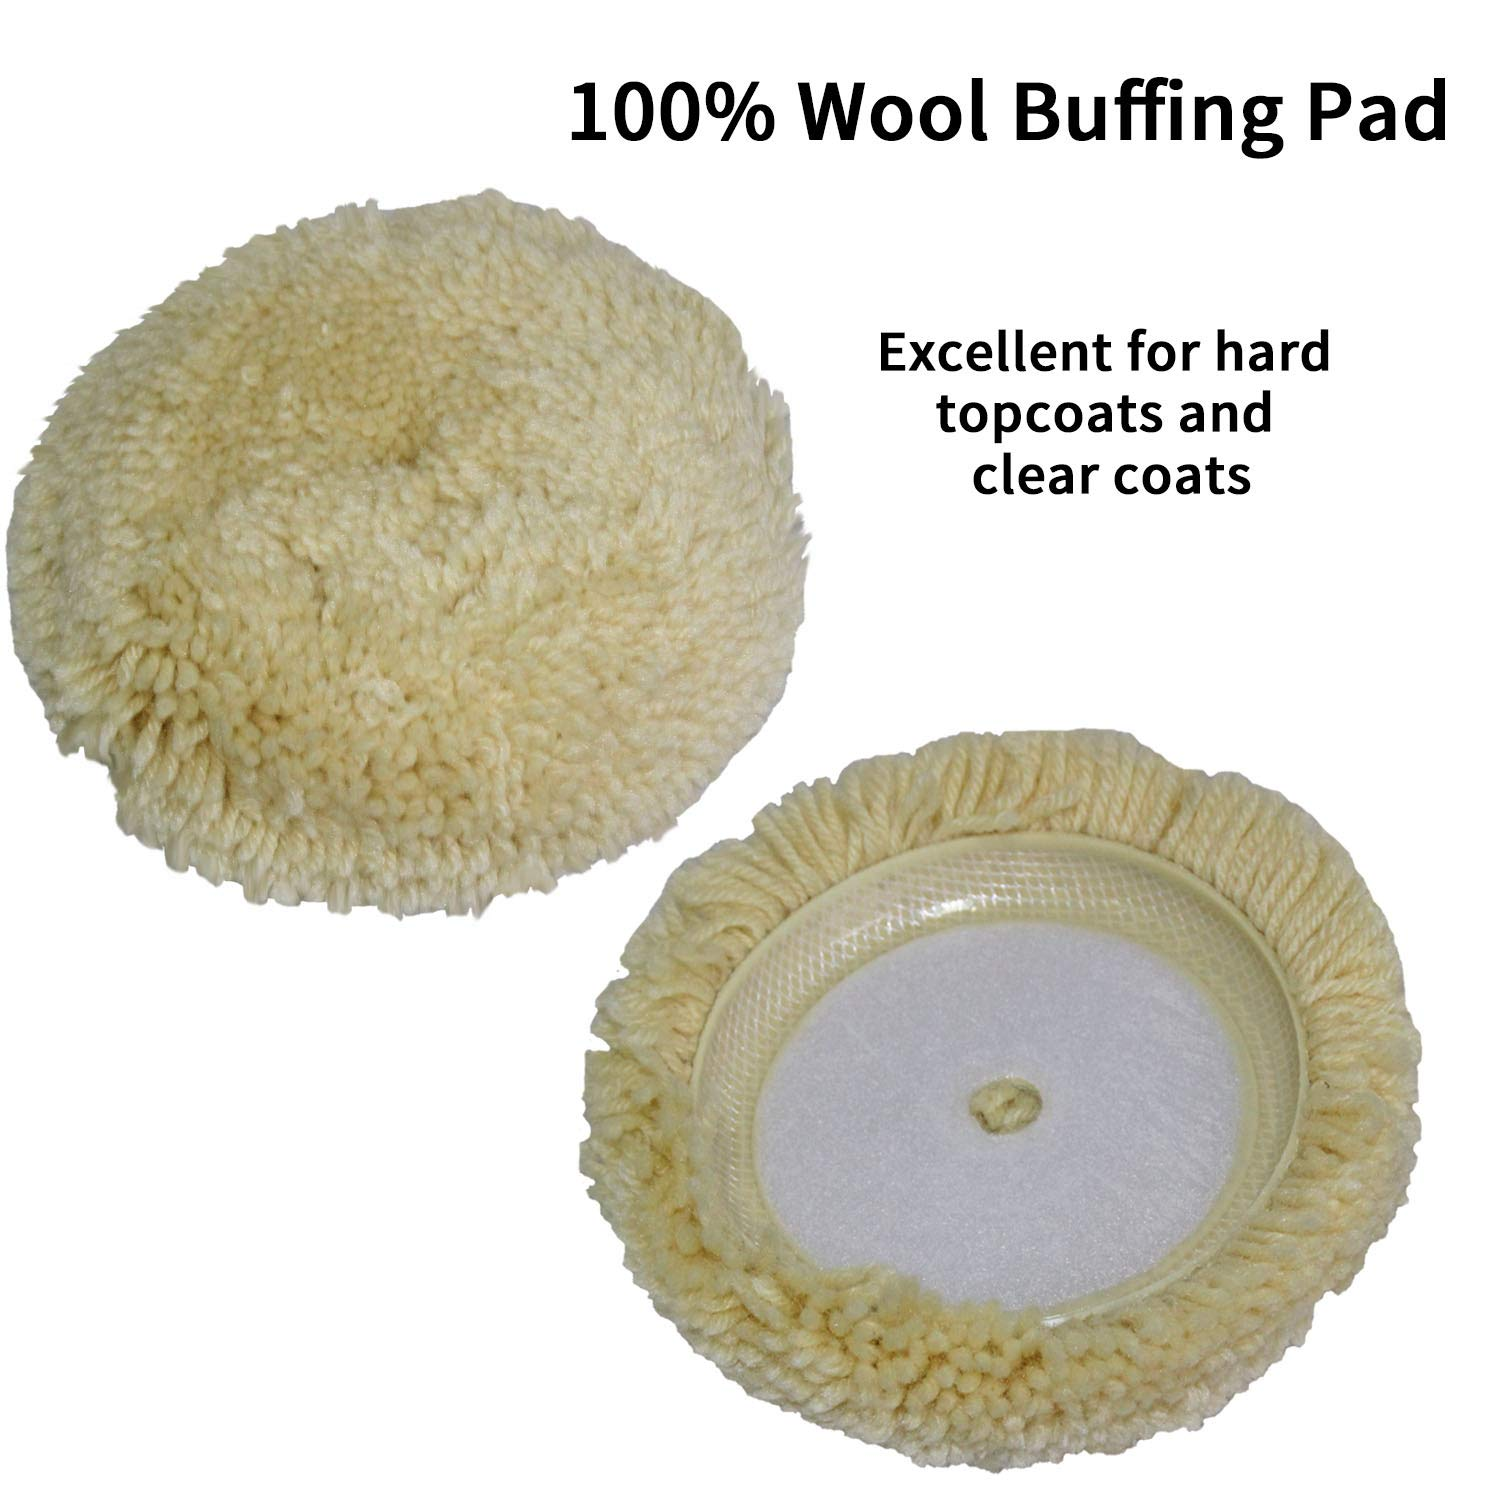 Polishing Pad Buffing Wheel Kit 10PCS with Waffle Foam & Lambs Wool Hook and 6inch Polishing Buffer Wool with M14 Drill Adapter Fit for Metal Aluminum Stainless Steel Chrome Wood Plastic Glass etc by Medoon (Image #3)